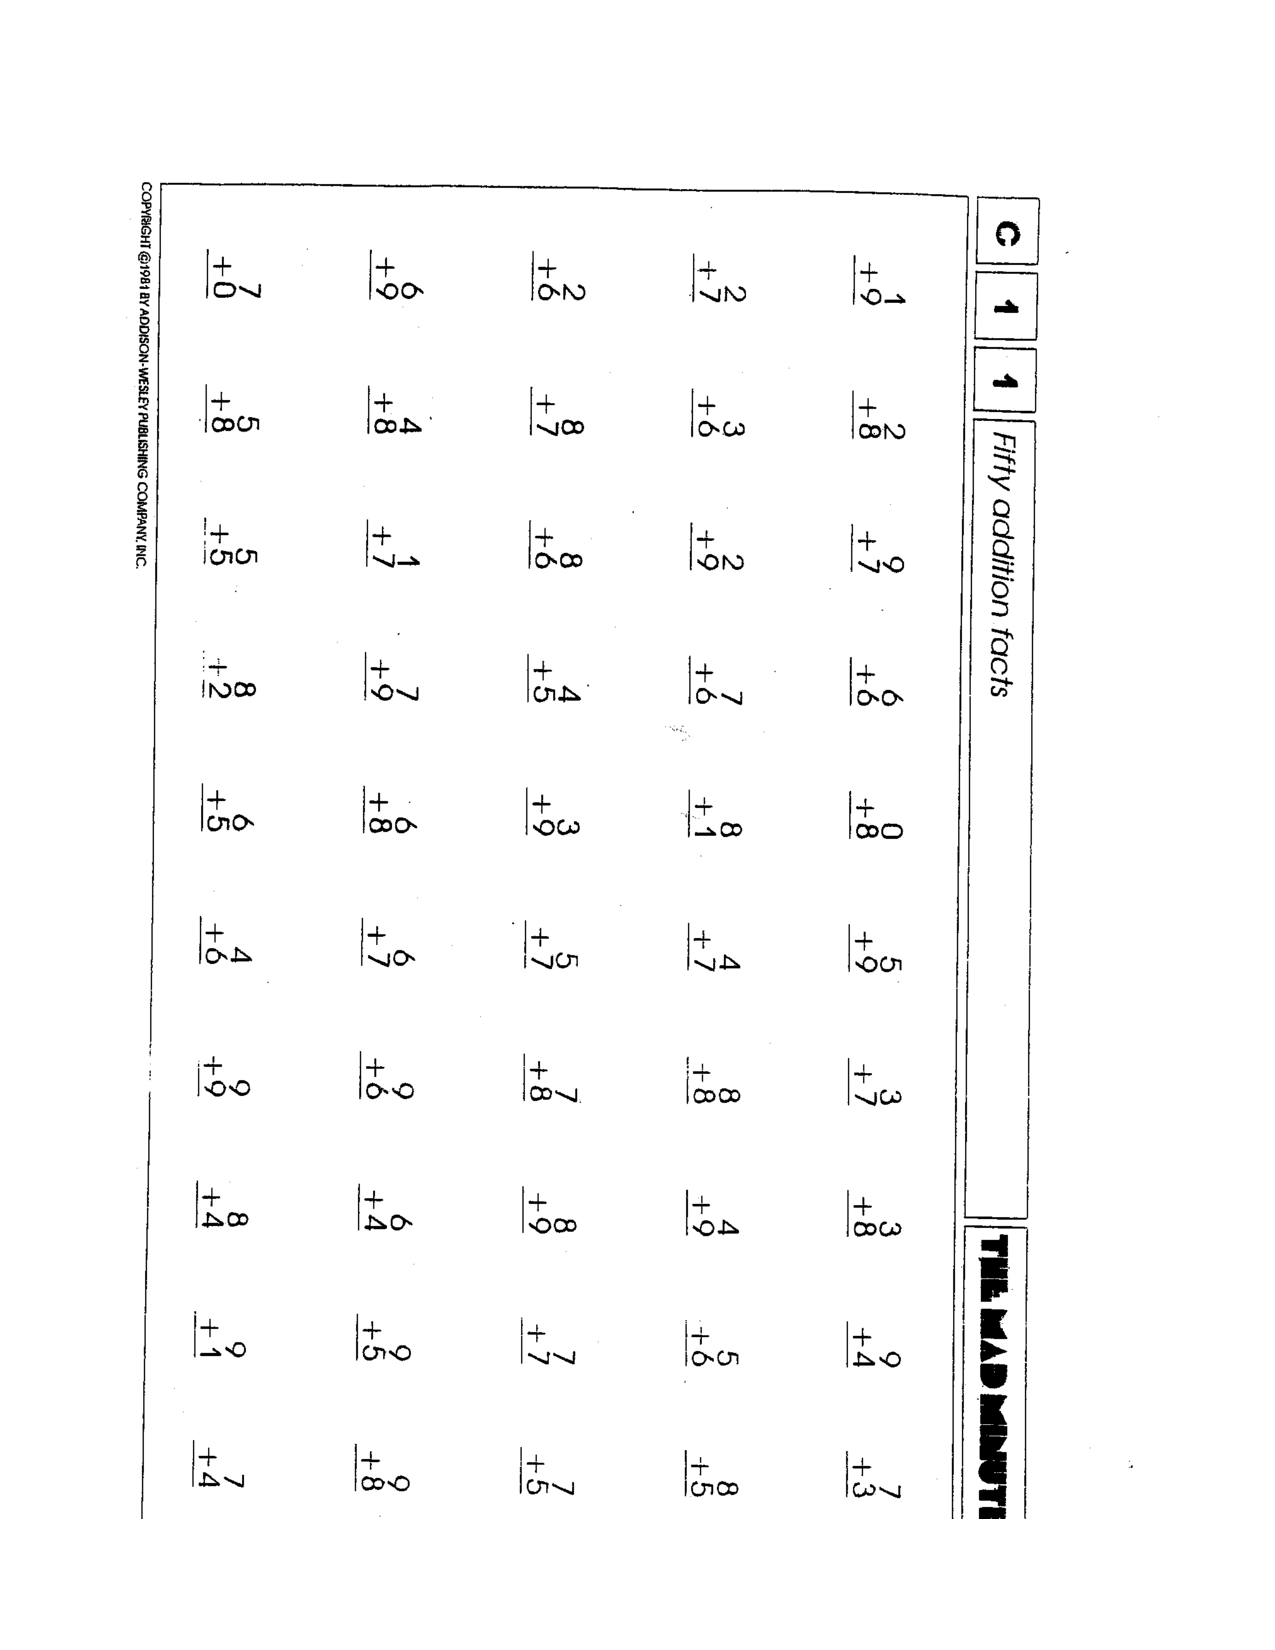 Worksheet 4th Grade Math Printable Worksheets math worksheet 4th grade multiplication intrepidpath 6 best images of printable worksheets color